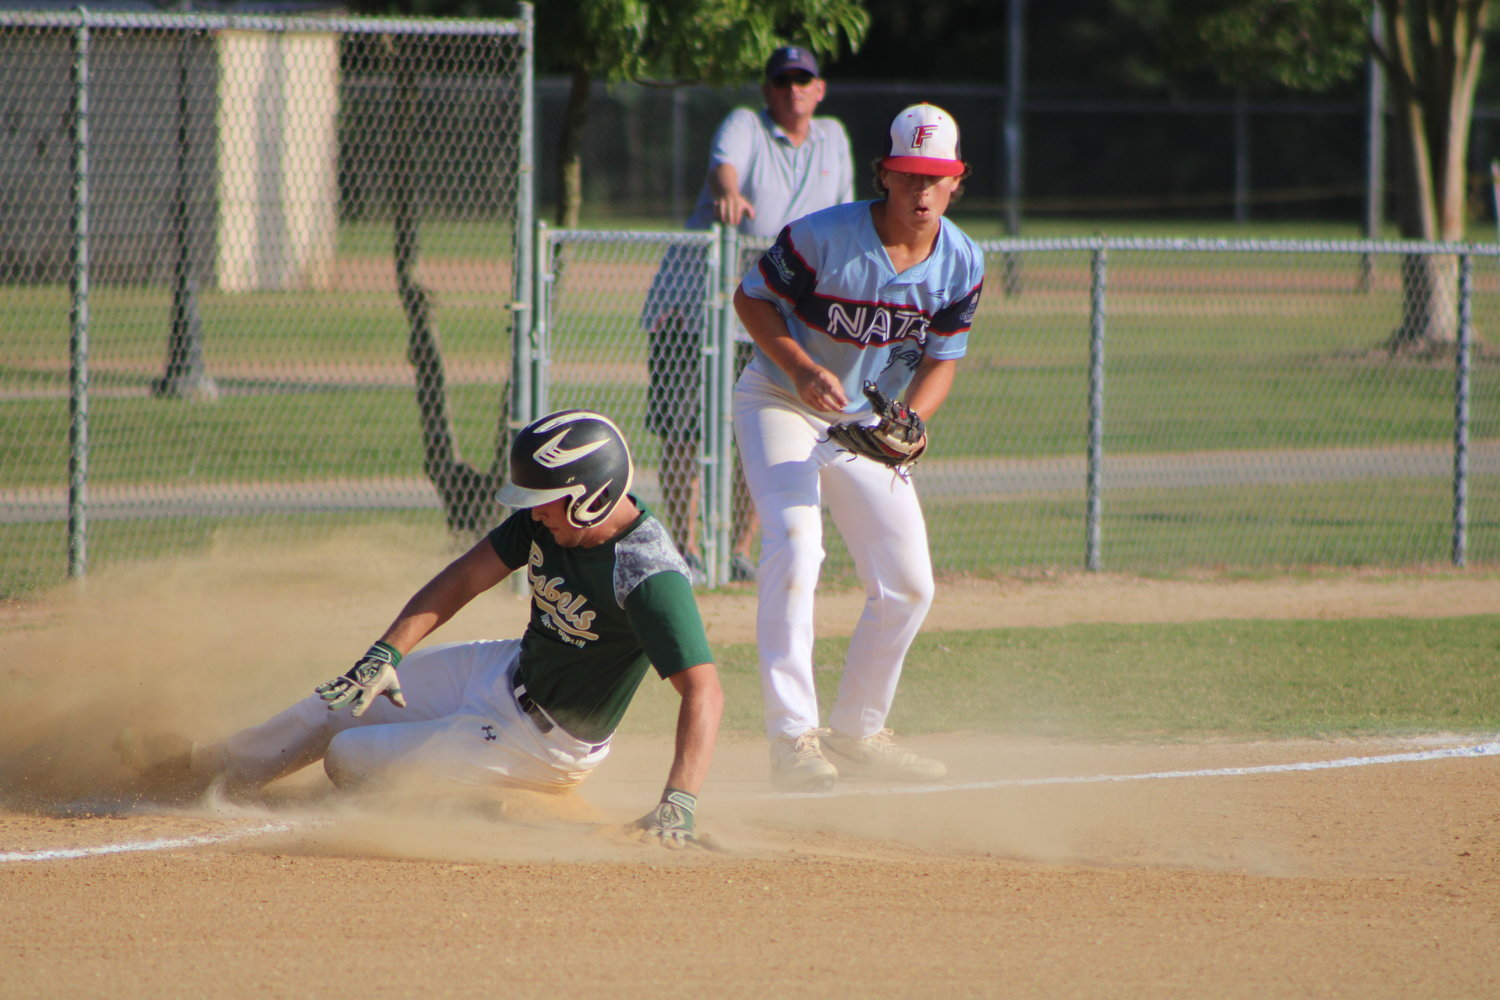 Kyle Holland, of the Mount Olive Green Machine, slides safely into third base after connecting on a bases-clearing triple during middle-inning action against the Garner Junior Nats on Thursday evening.